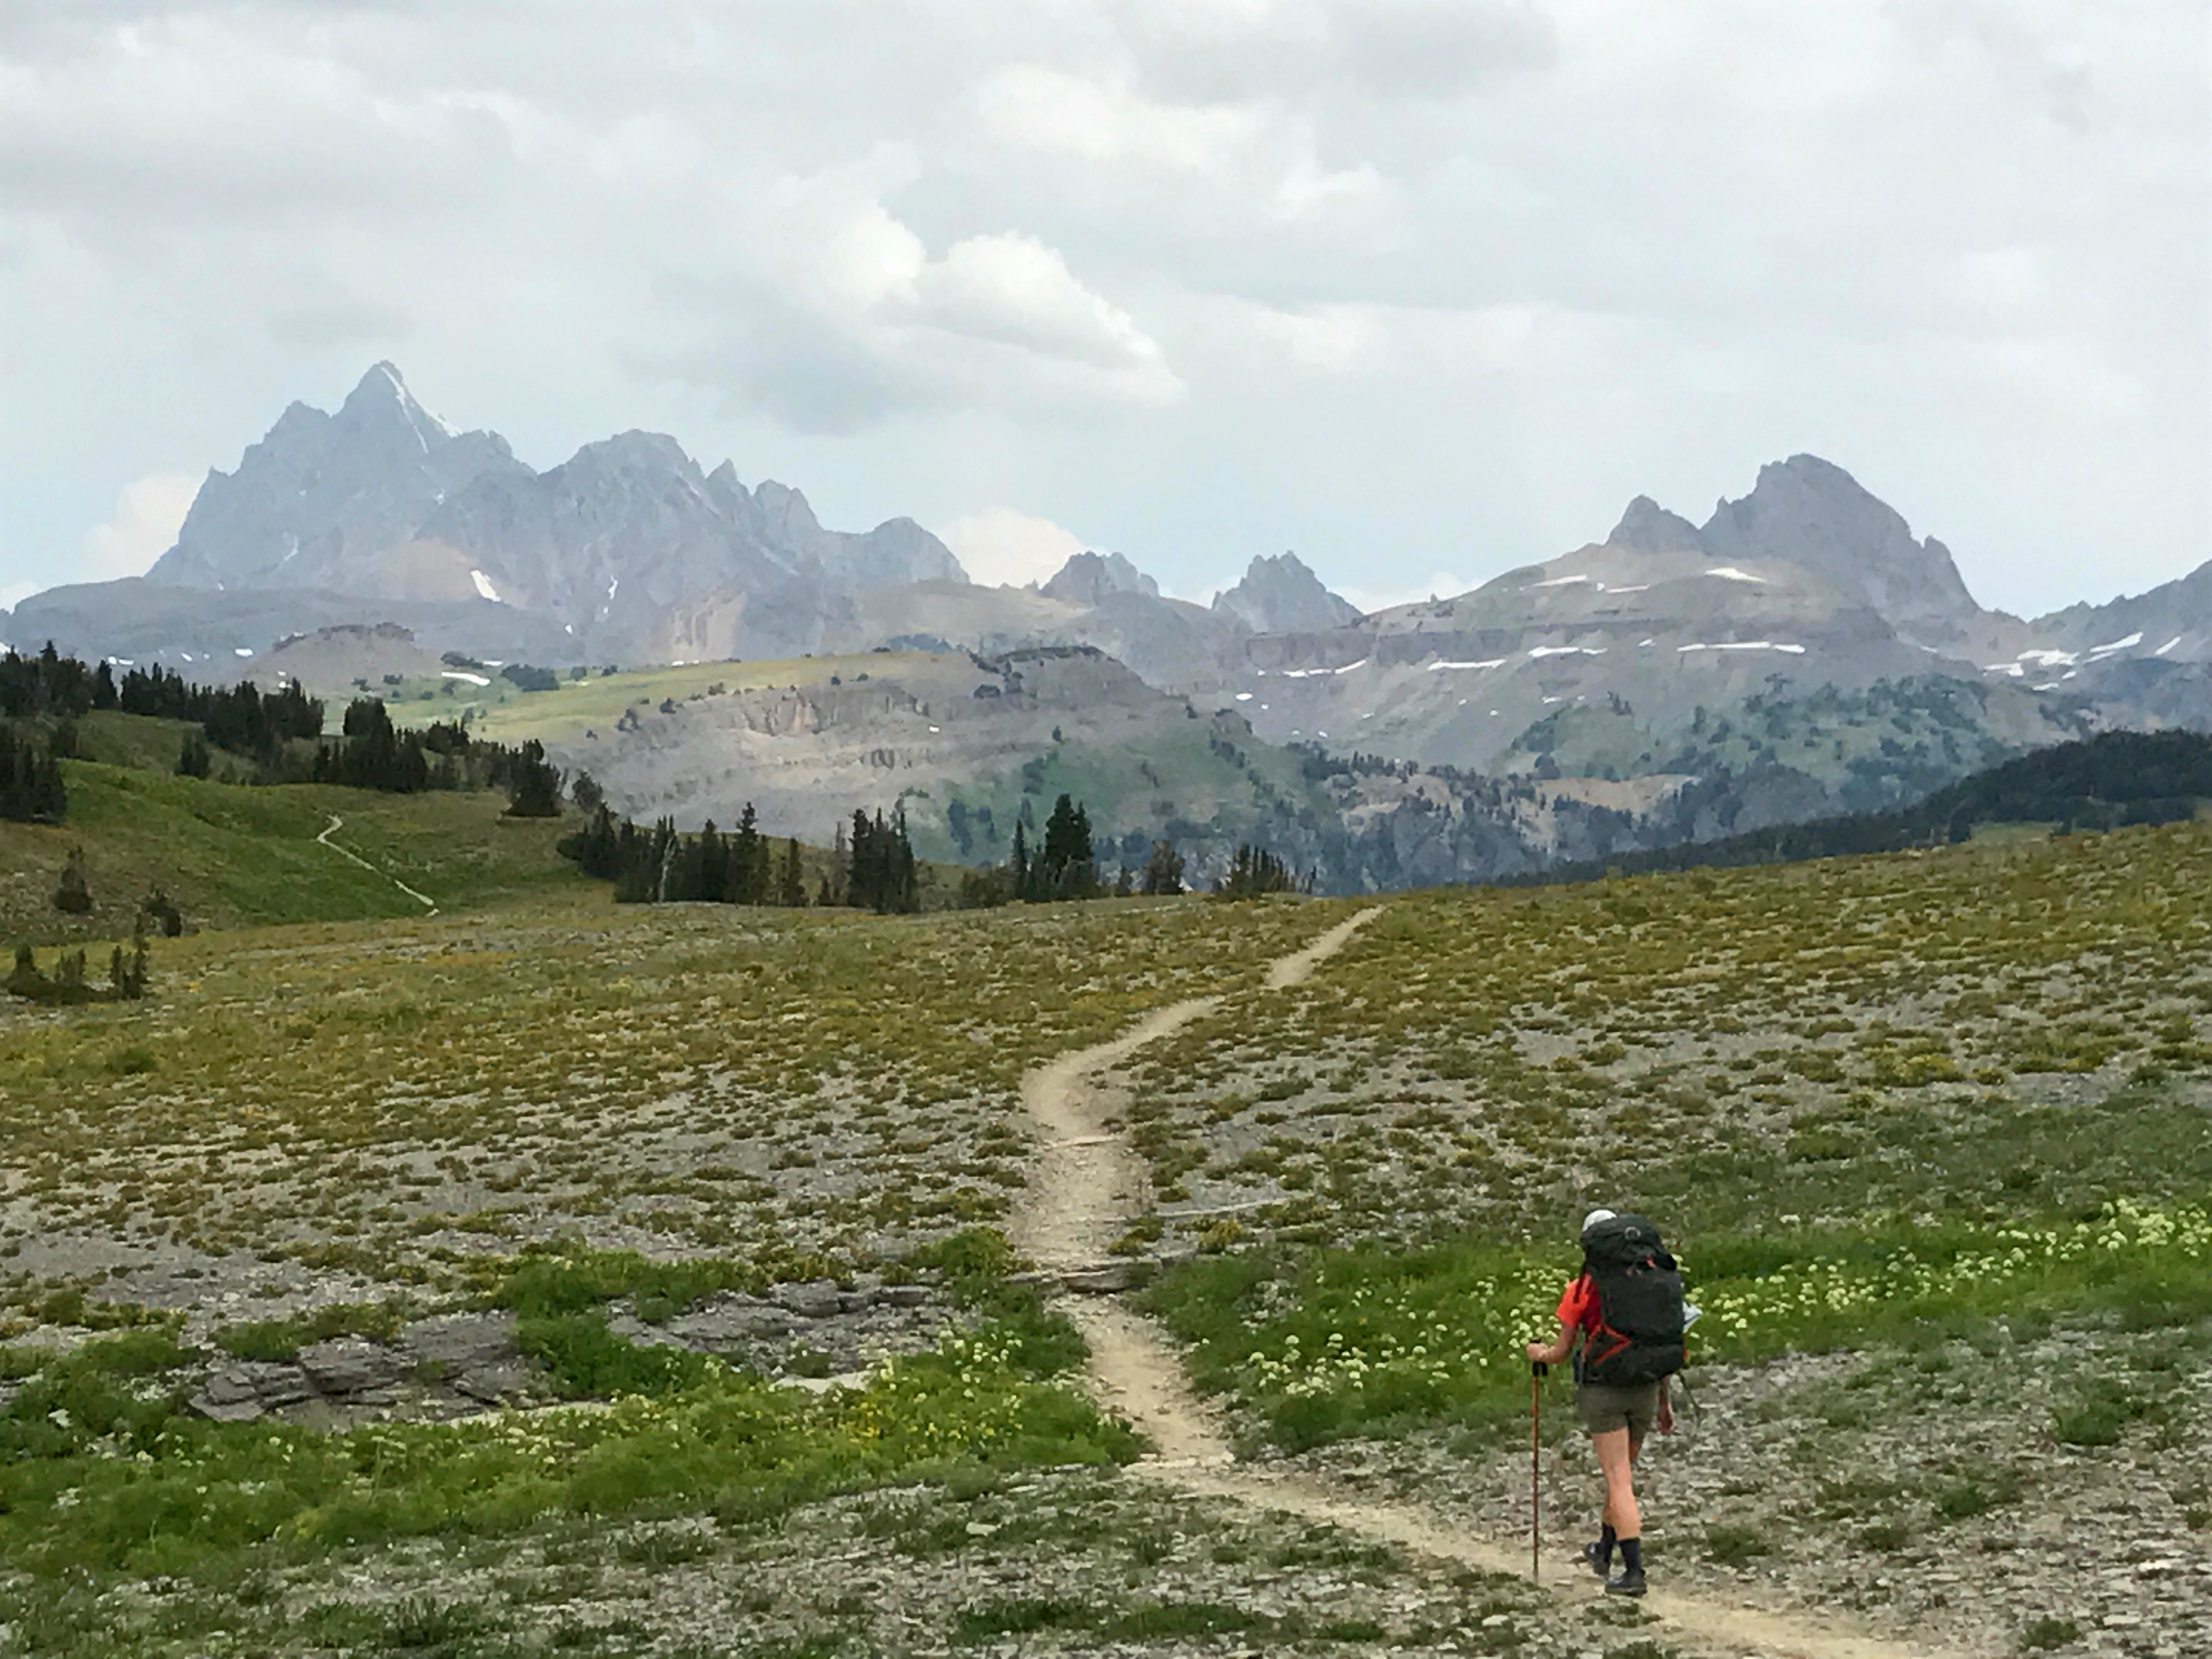 hiker on an open singletrack trail in Grand Tetons national park